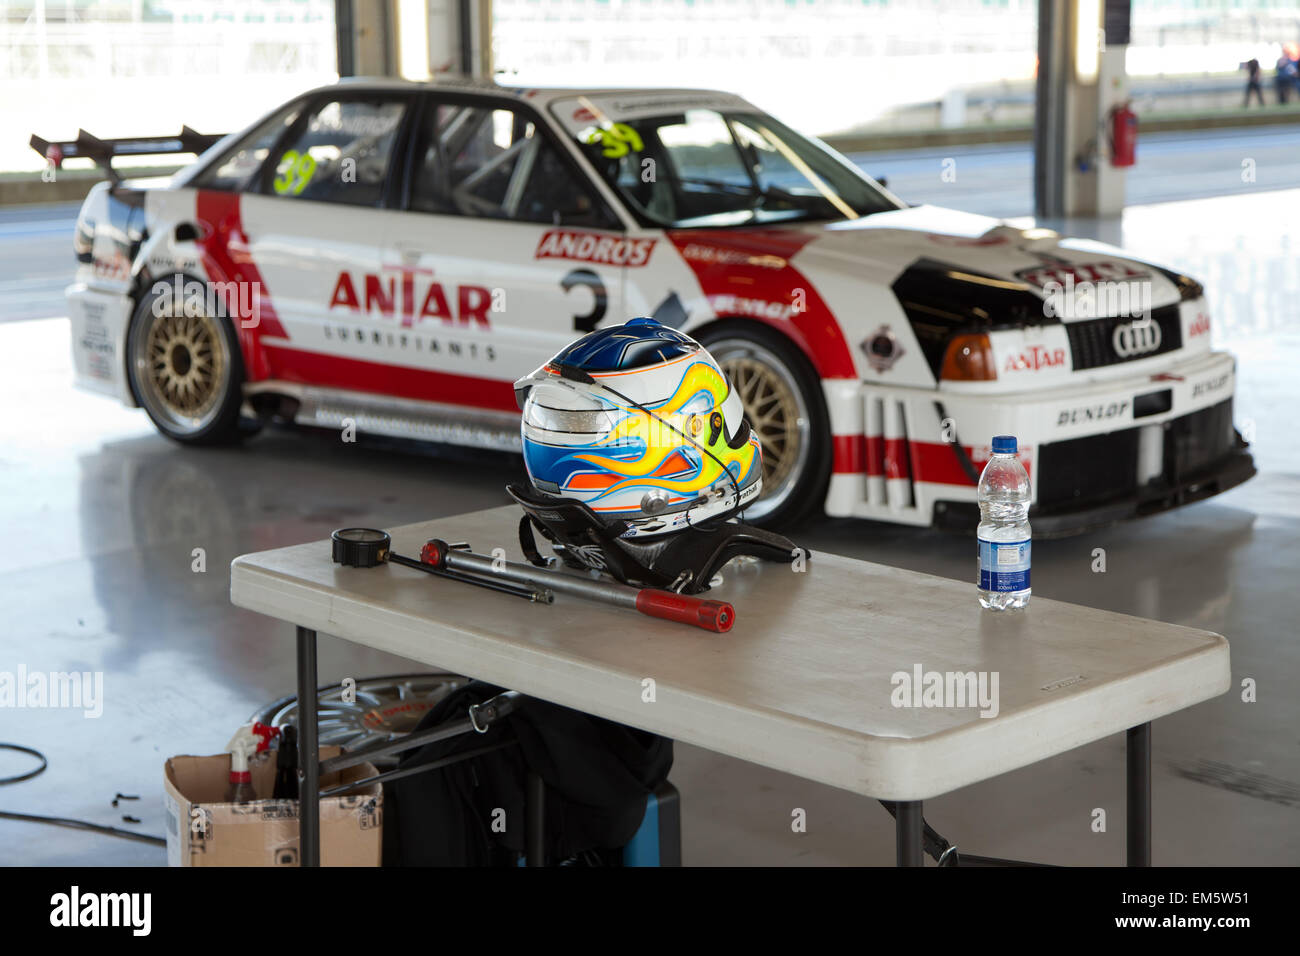 Drivers Helmet And HANS Device Infront Of An Audi Touring Car In - Audi car garage